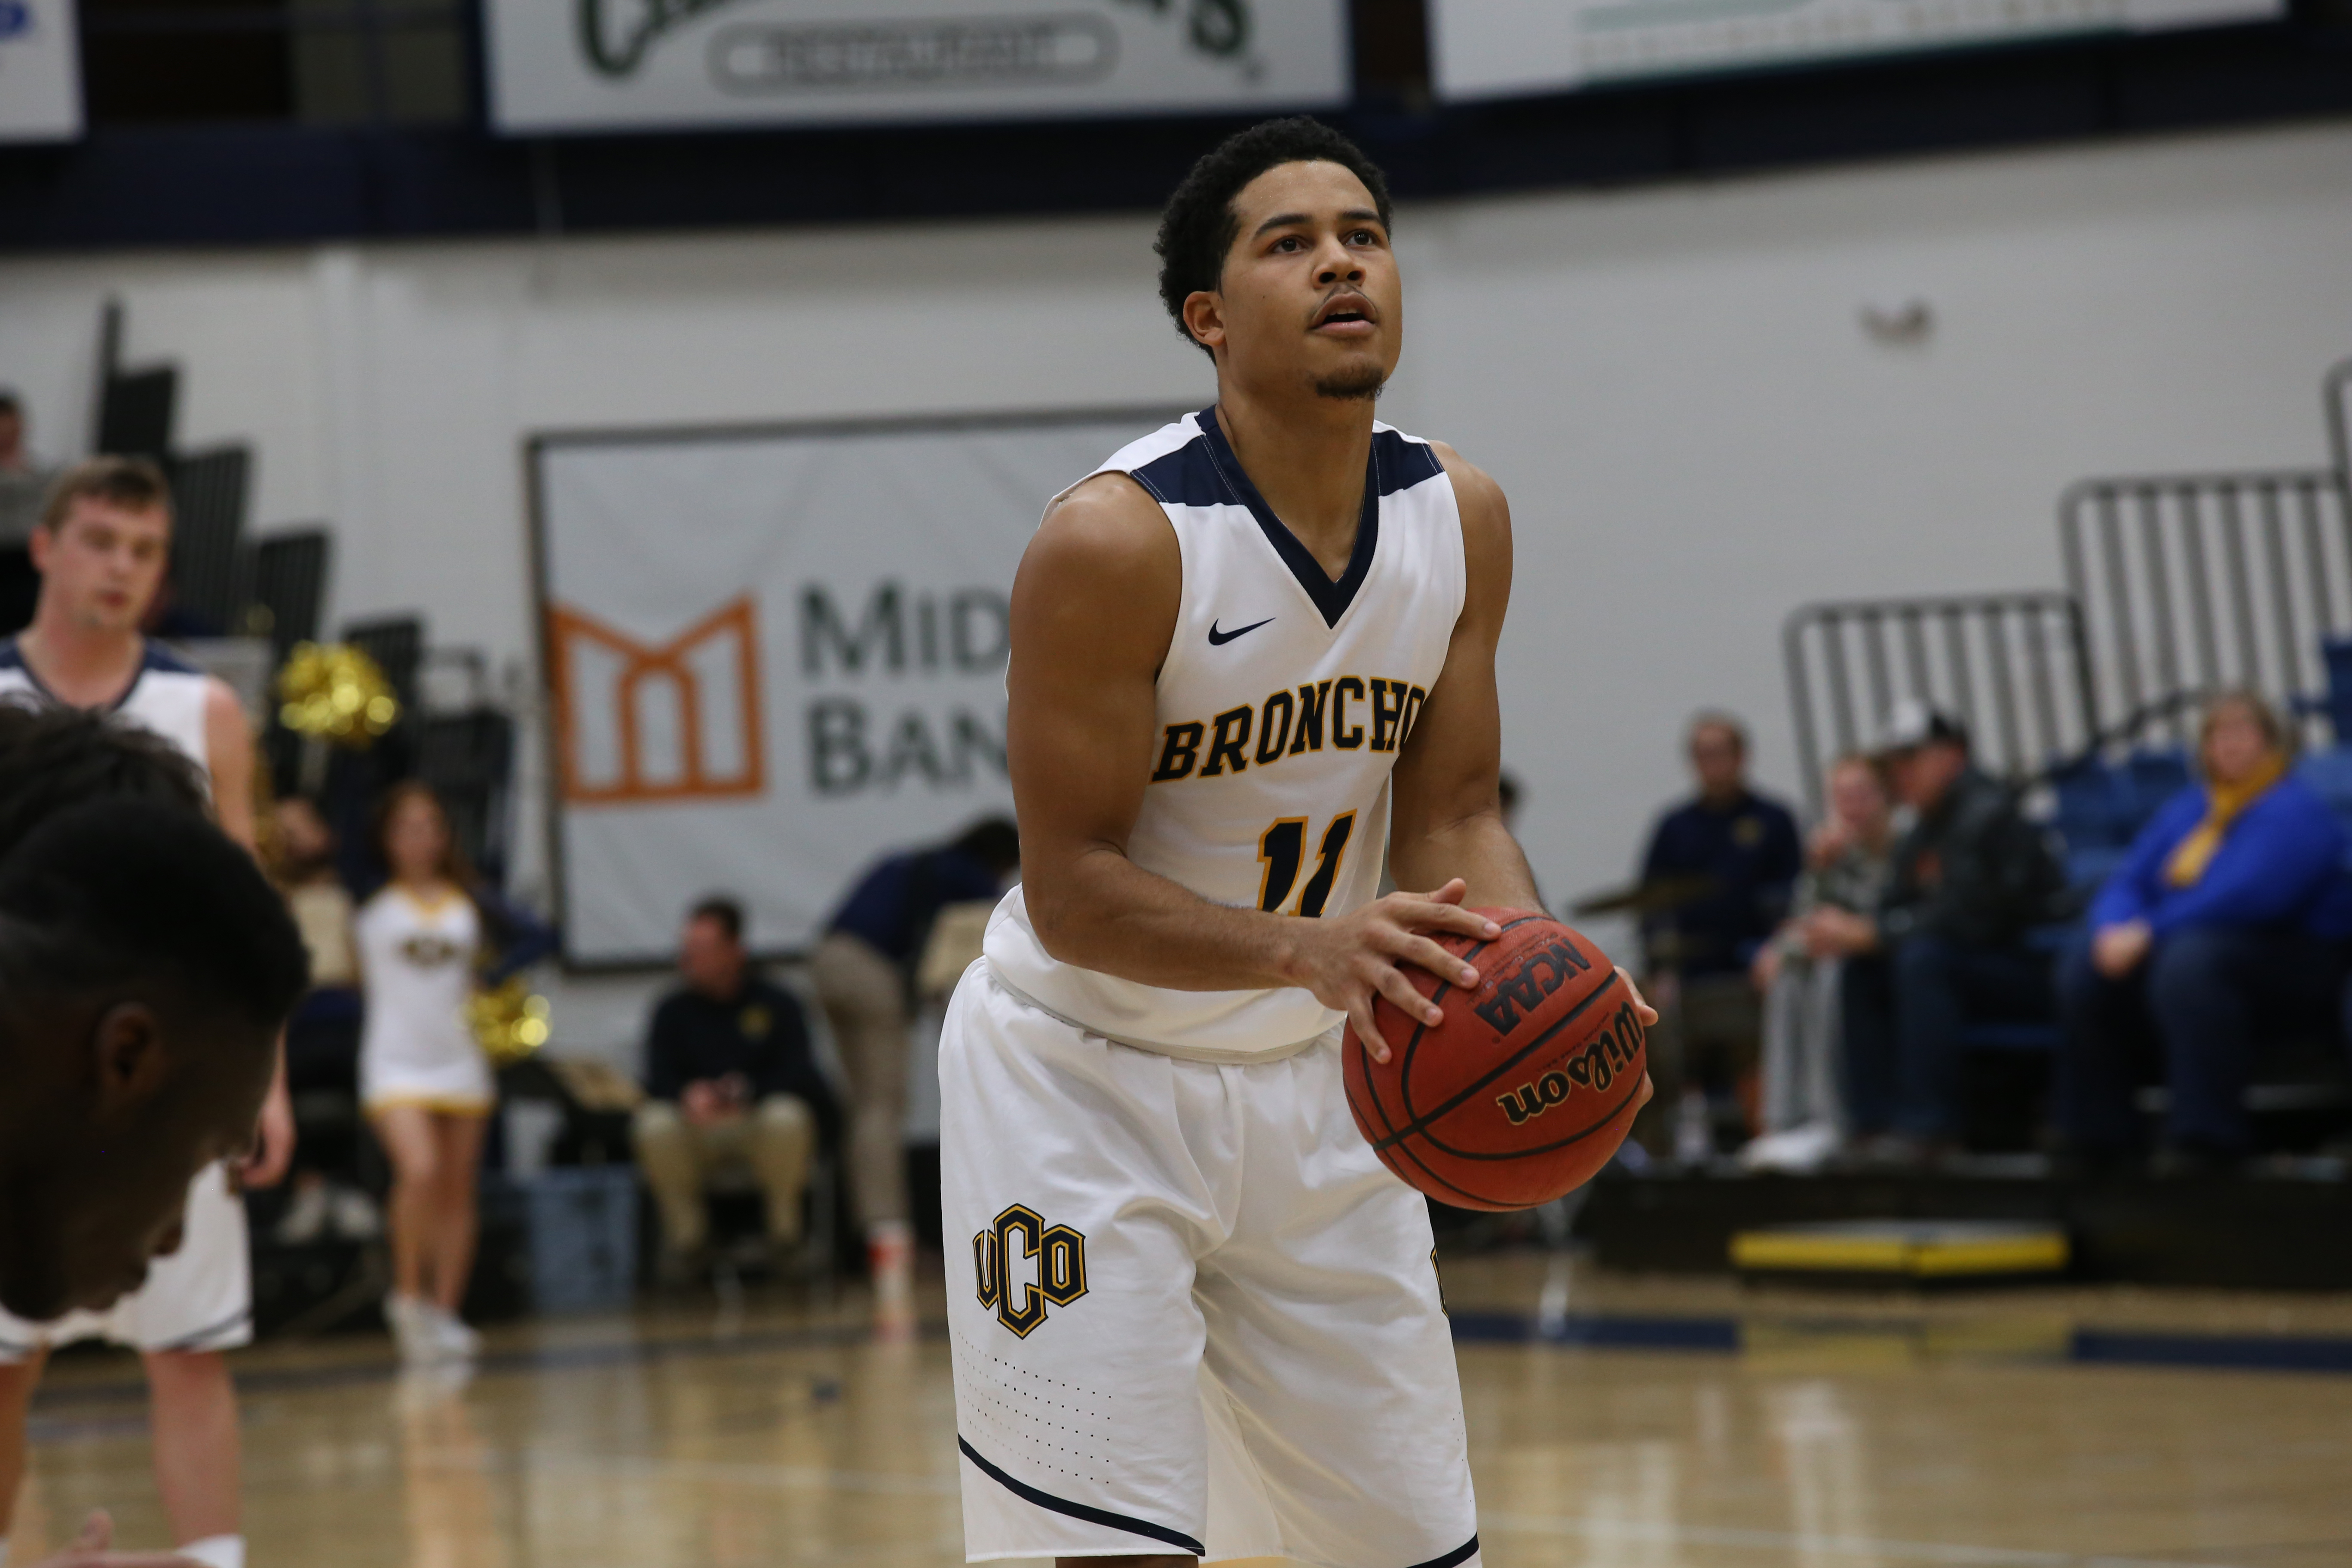 UCO Men's Basketball: Late Turnovers, Fouling Plague Bronchos